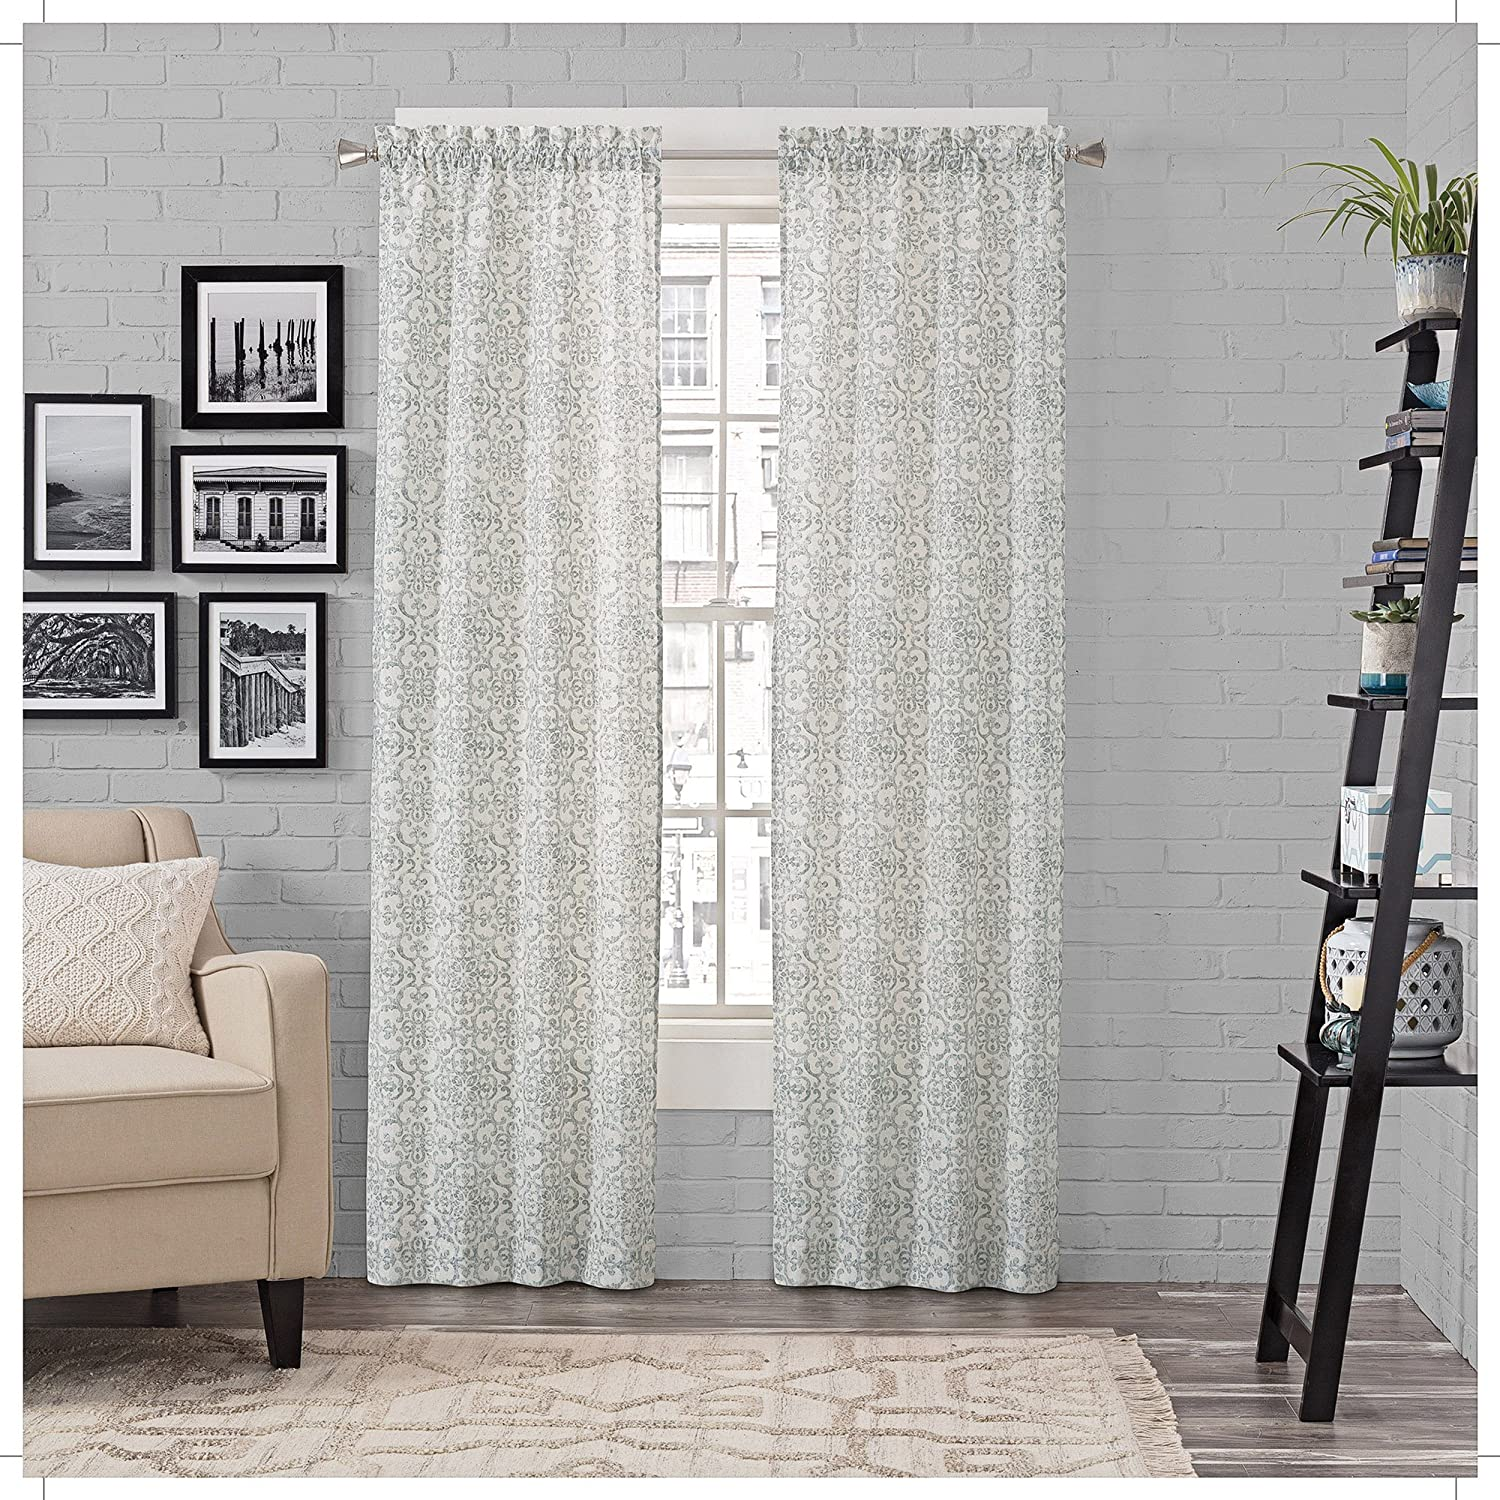 """PAIRS TO GO Brockwell 2-Pack Window Curtains, 56"""" x 84"""", Spa, 2 Piece"""